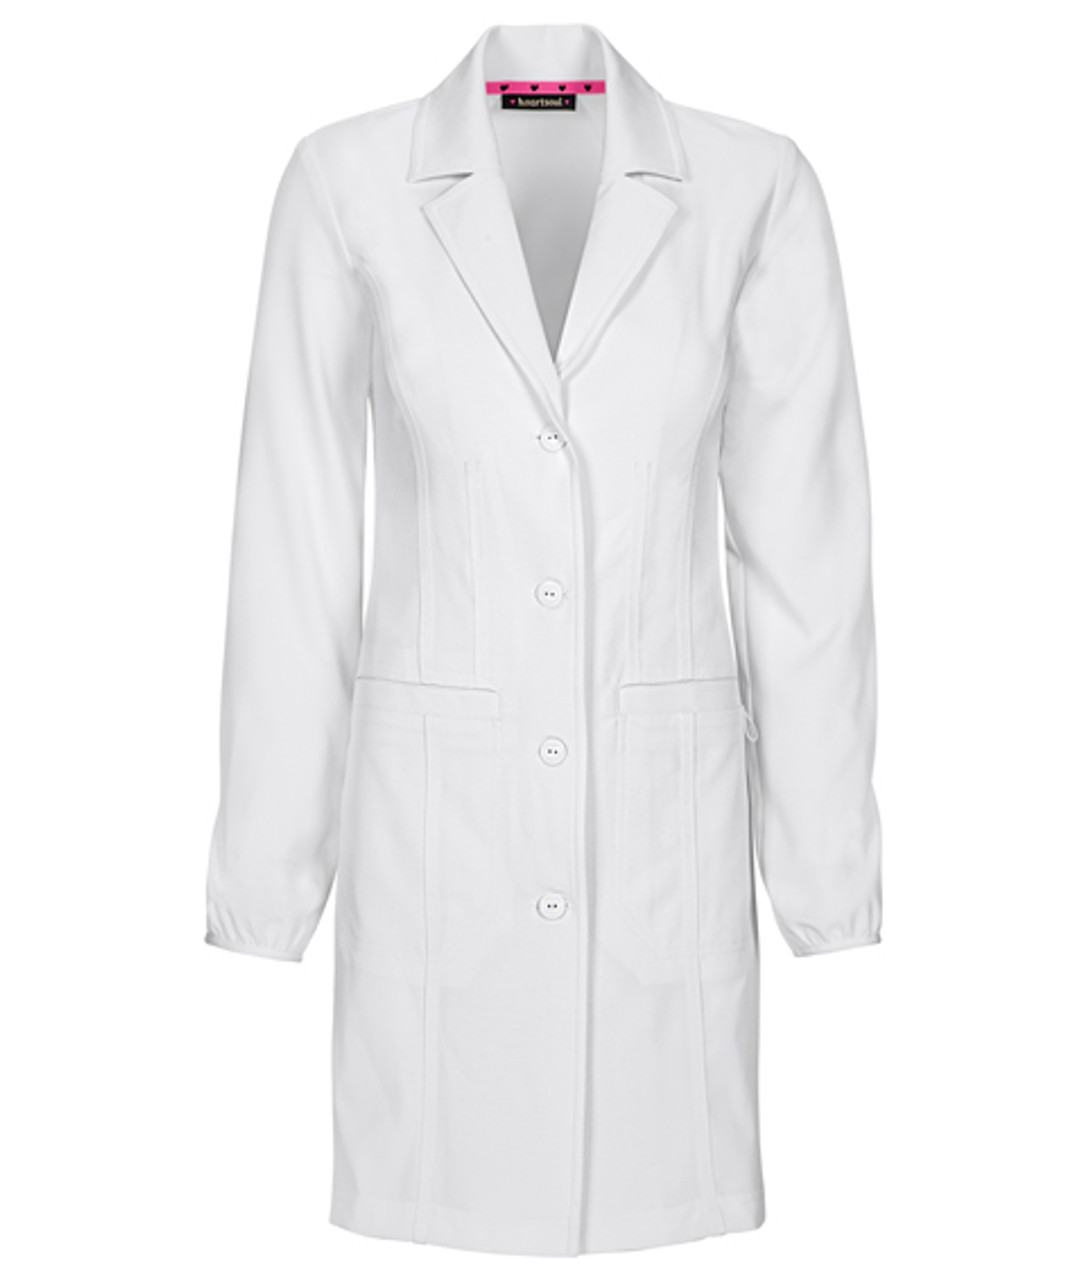 20402 Lab coat - Front View